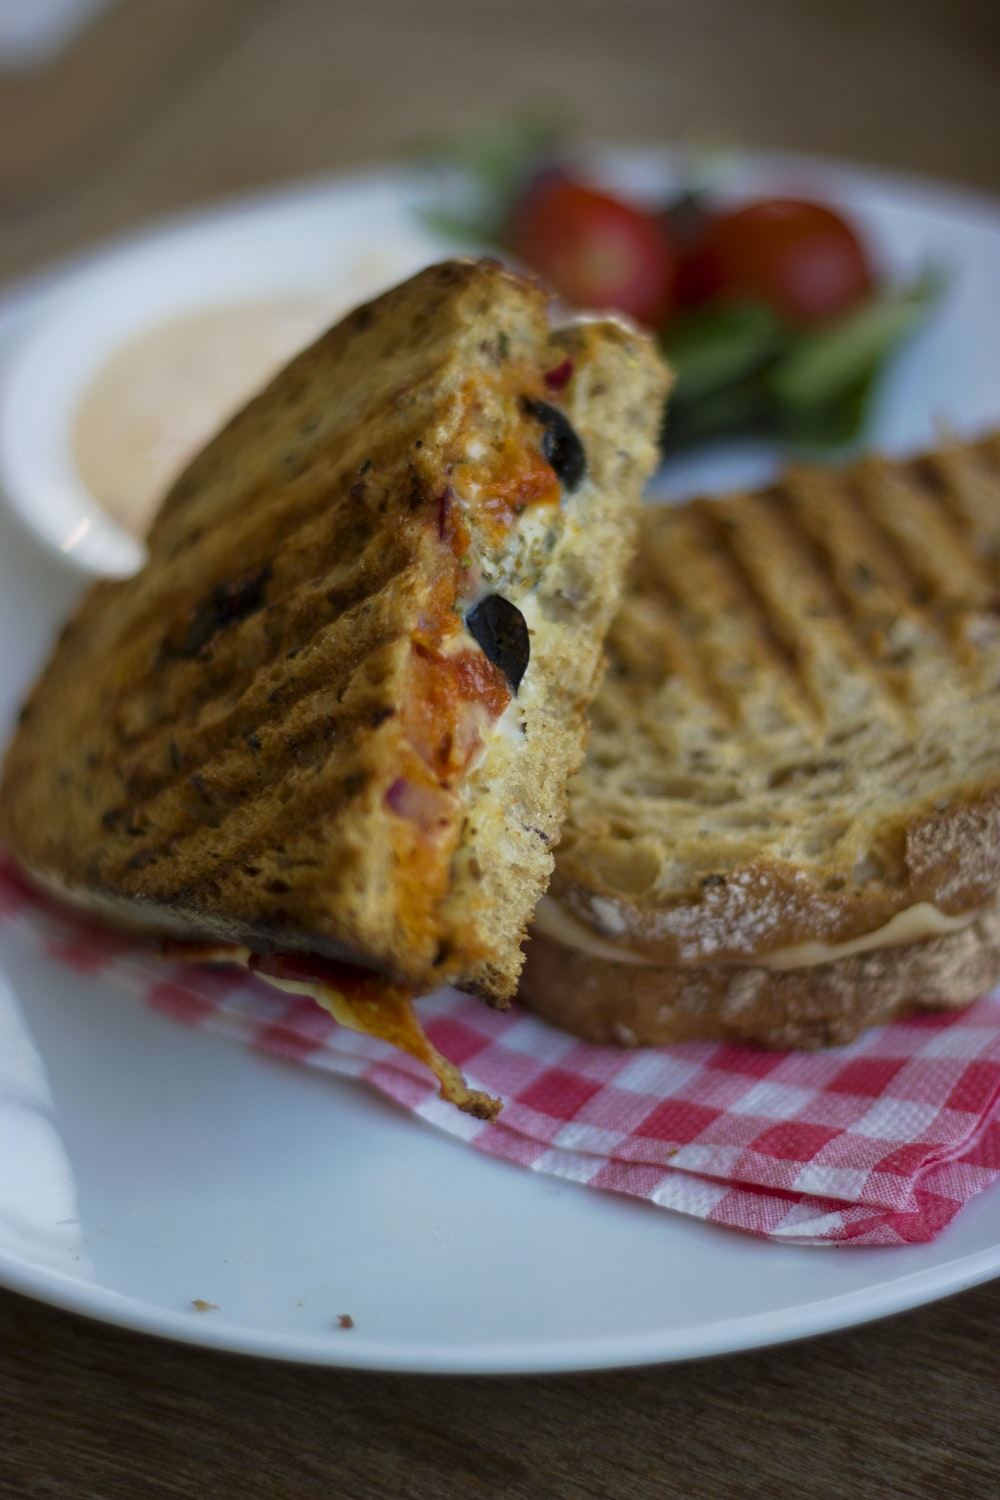 grilled breads on plate